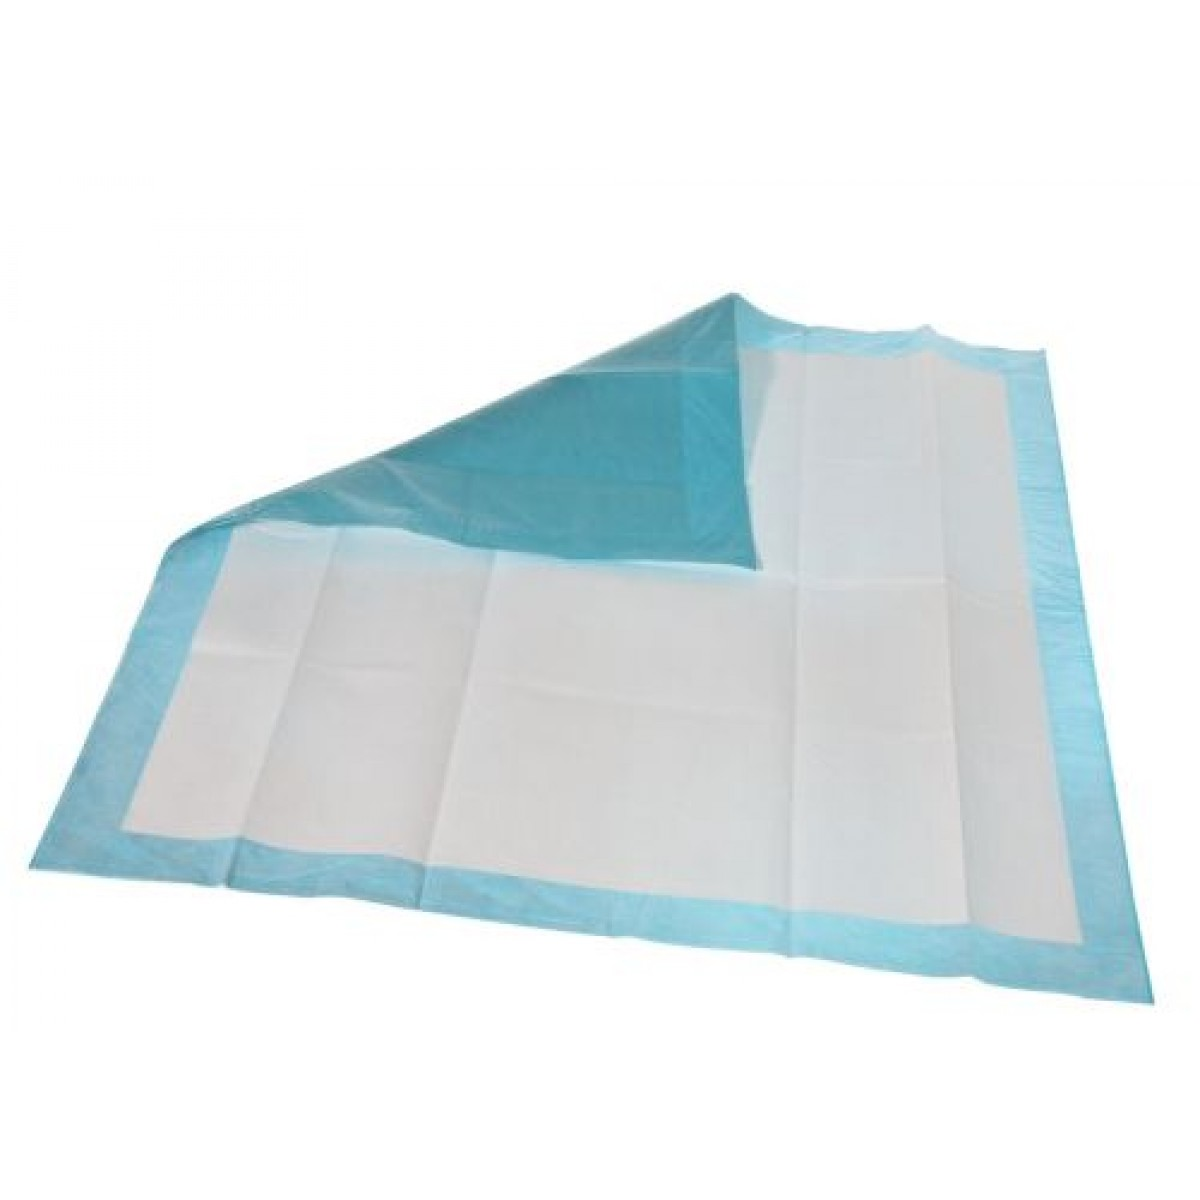 Extrasorbs Cloth Like Disposable Drypads Extrasorb2336